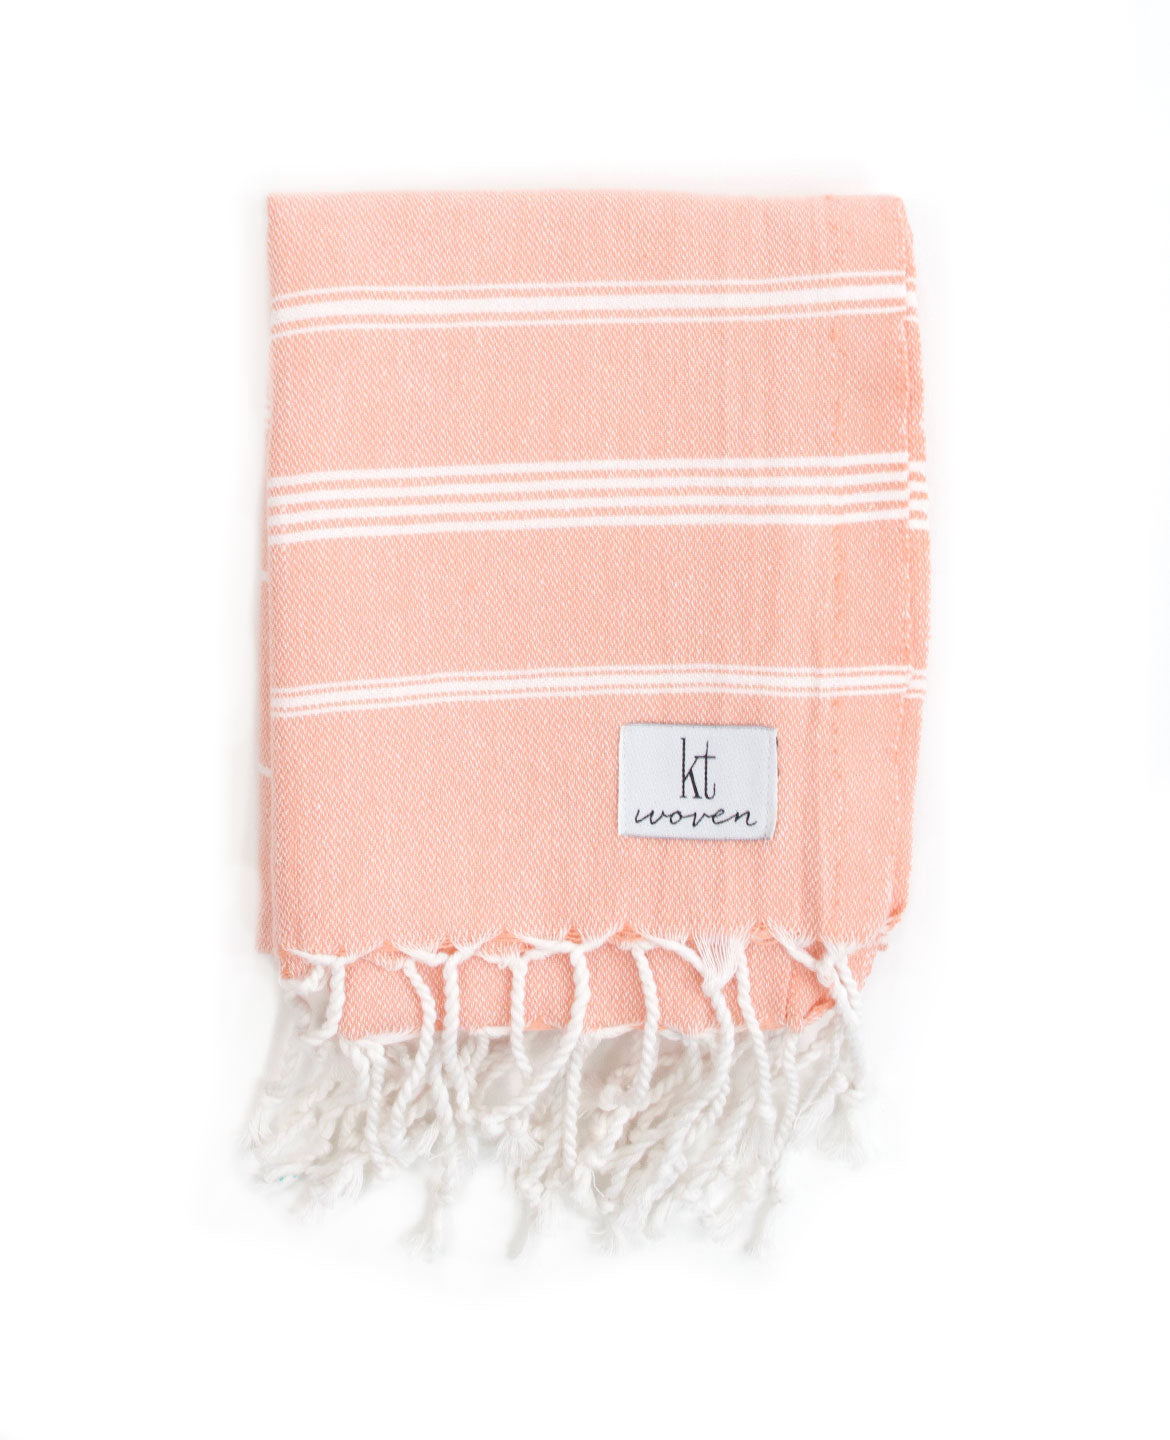 Original Hand Towel